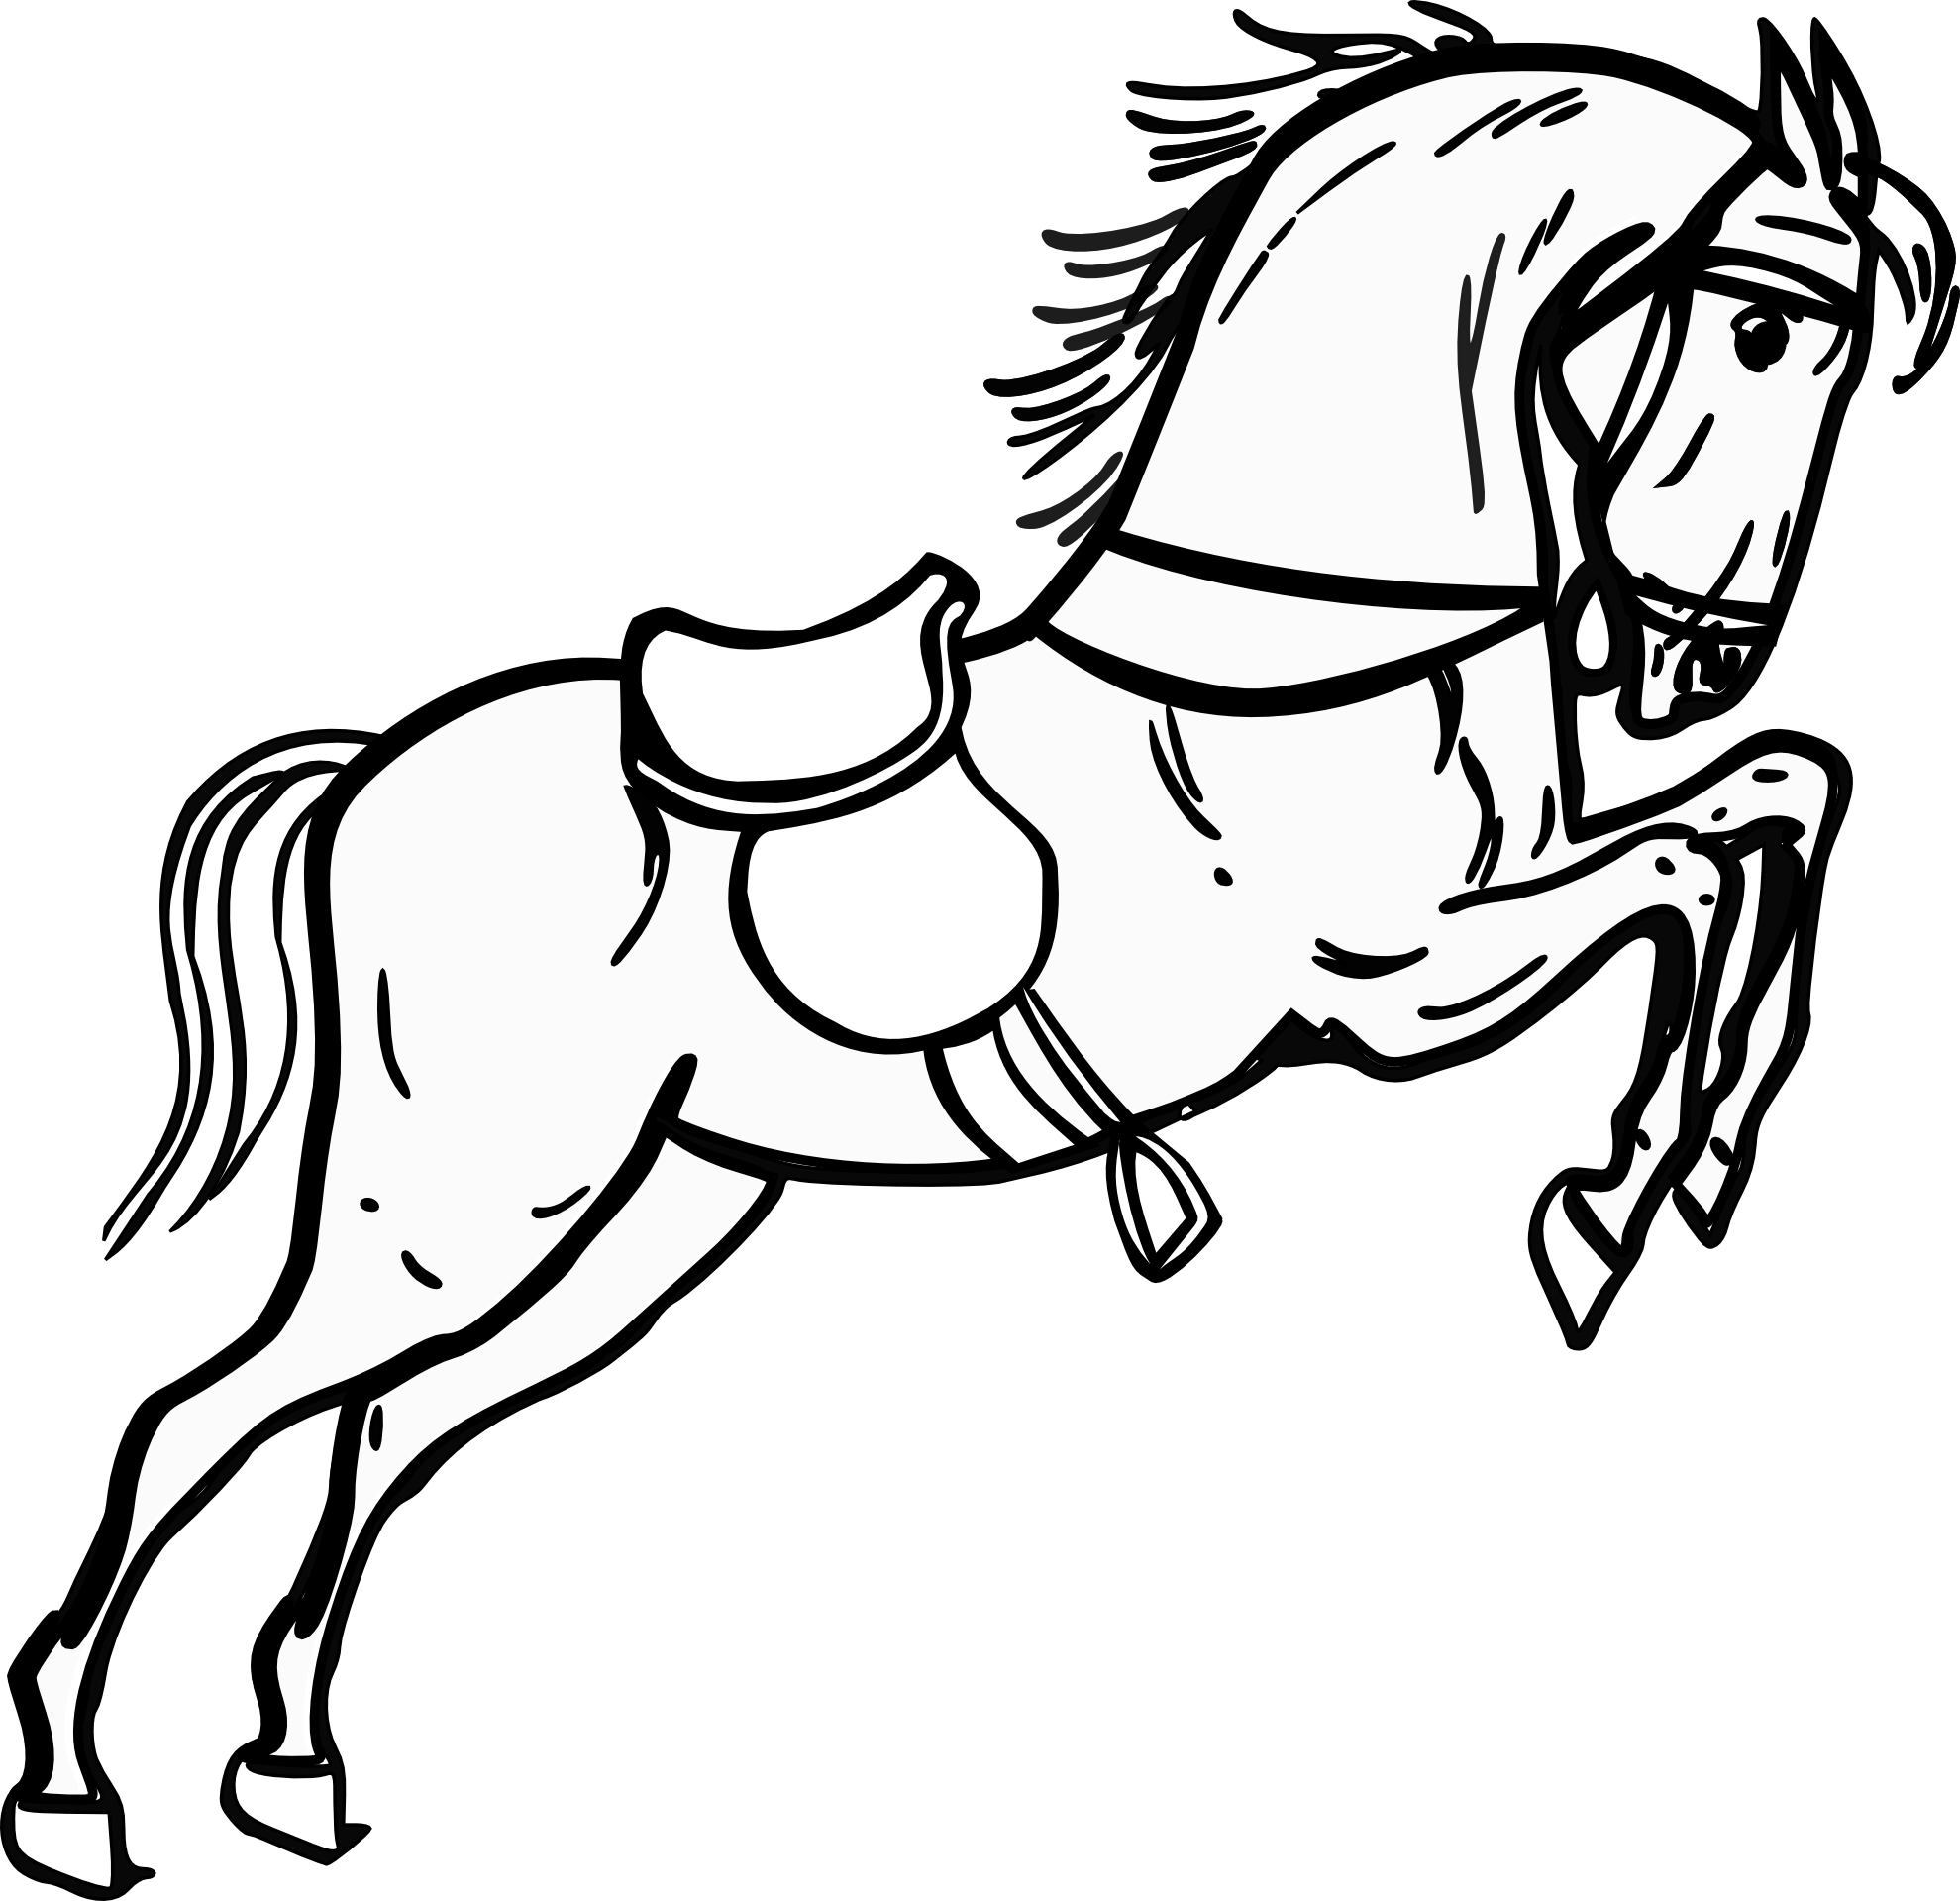 Horses Clipart Cartoon Horses Cartoon Transparent Free For Download On Webstockreview 2020